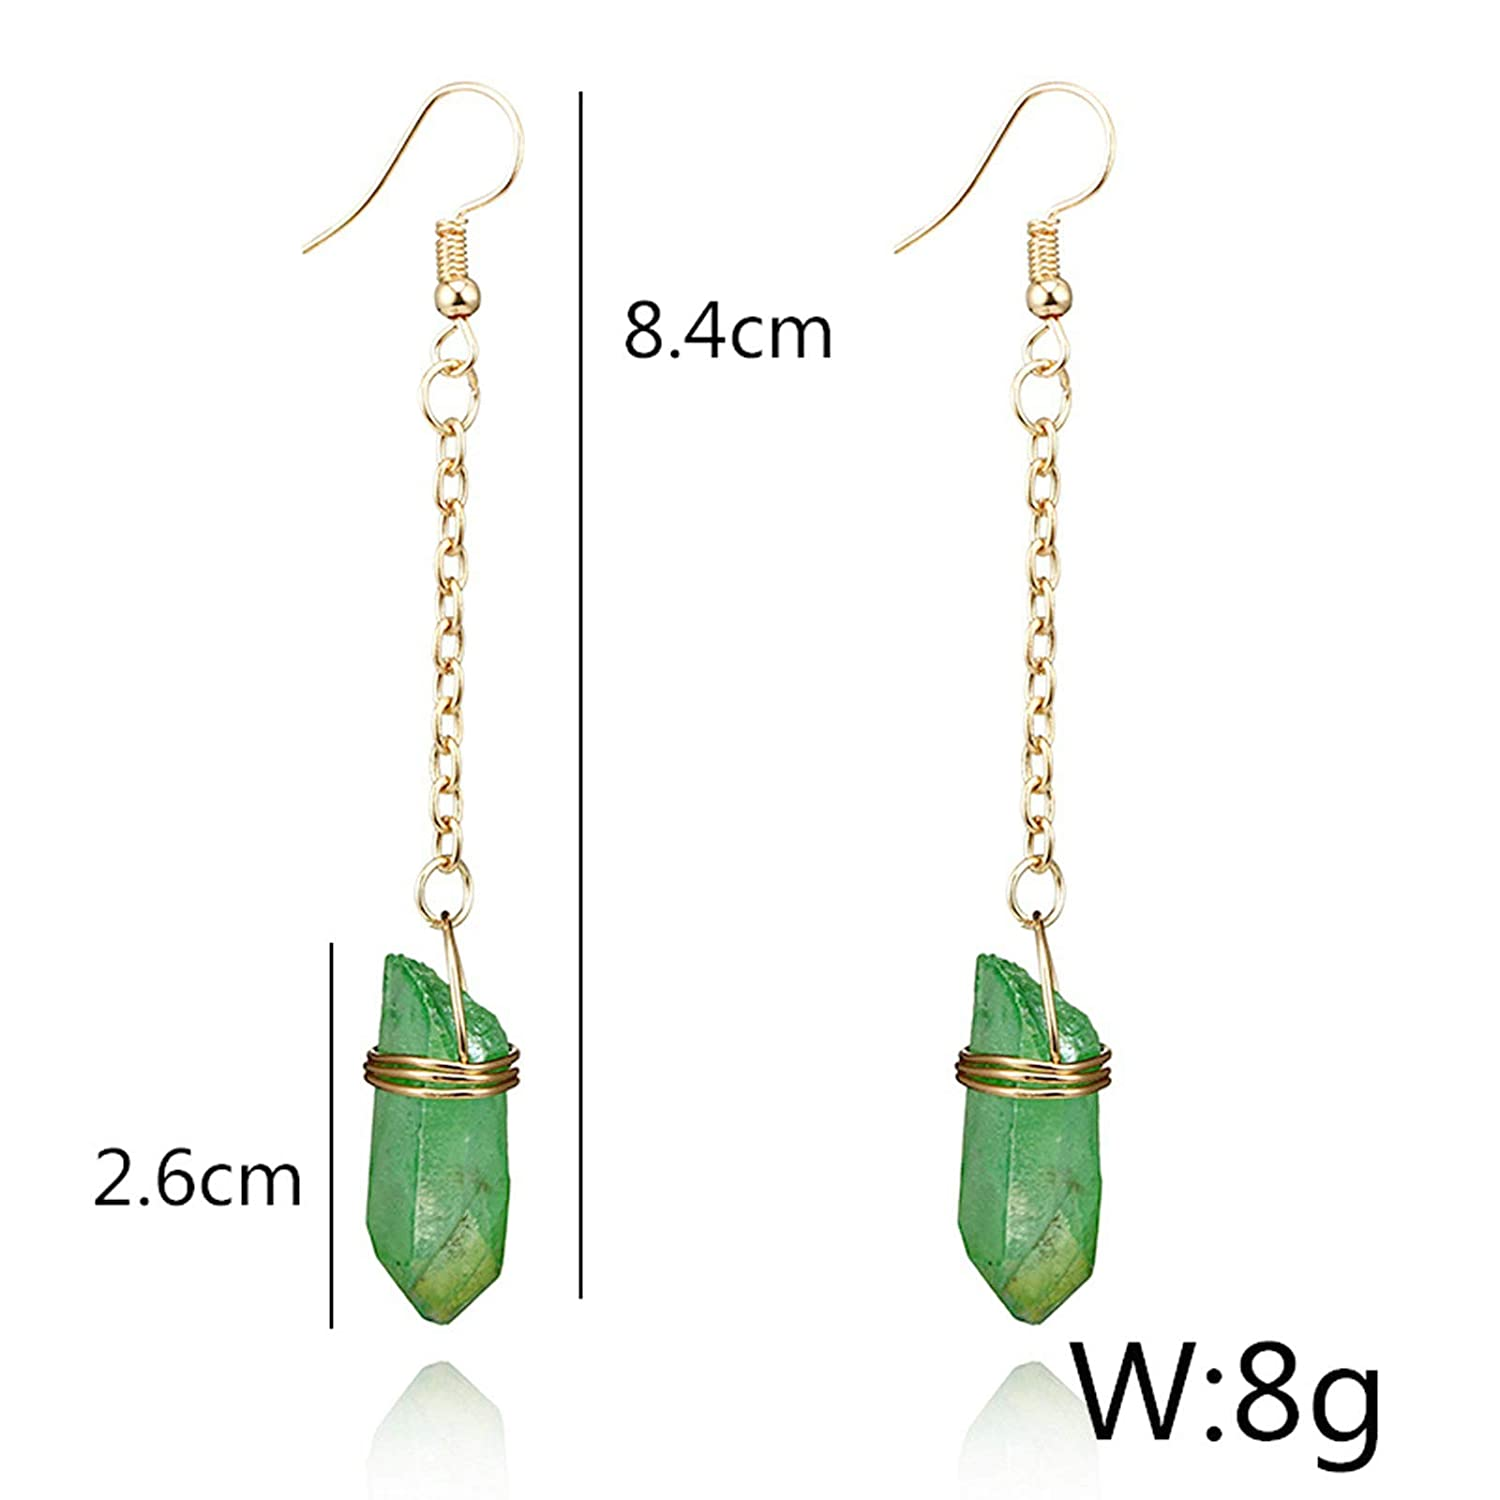 Gnzoe Female Jewelry-Alloy Earring for Women Girl Column Quartz Dangle Earrings